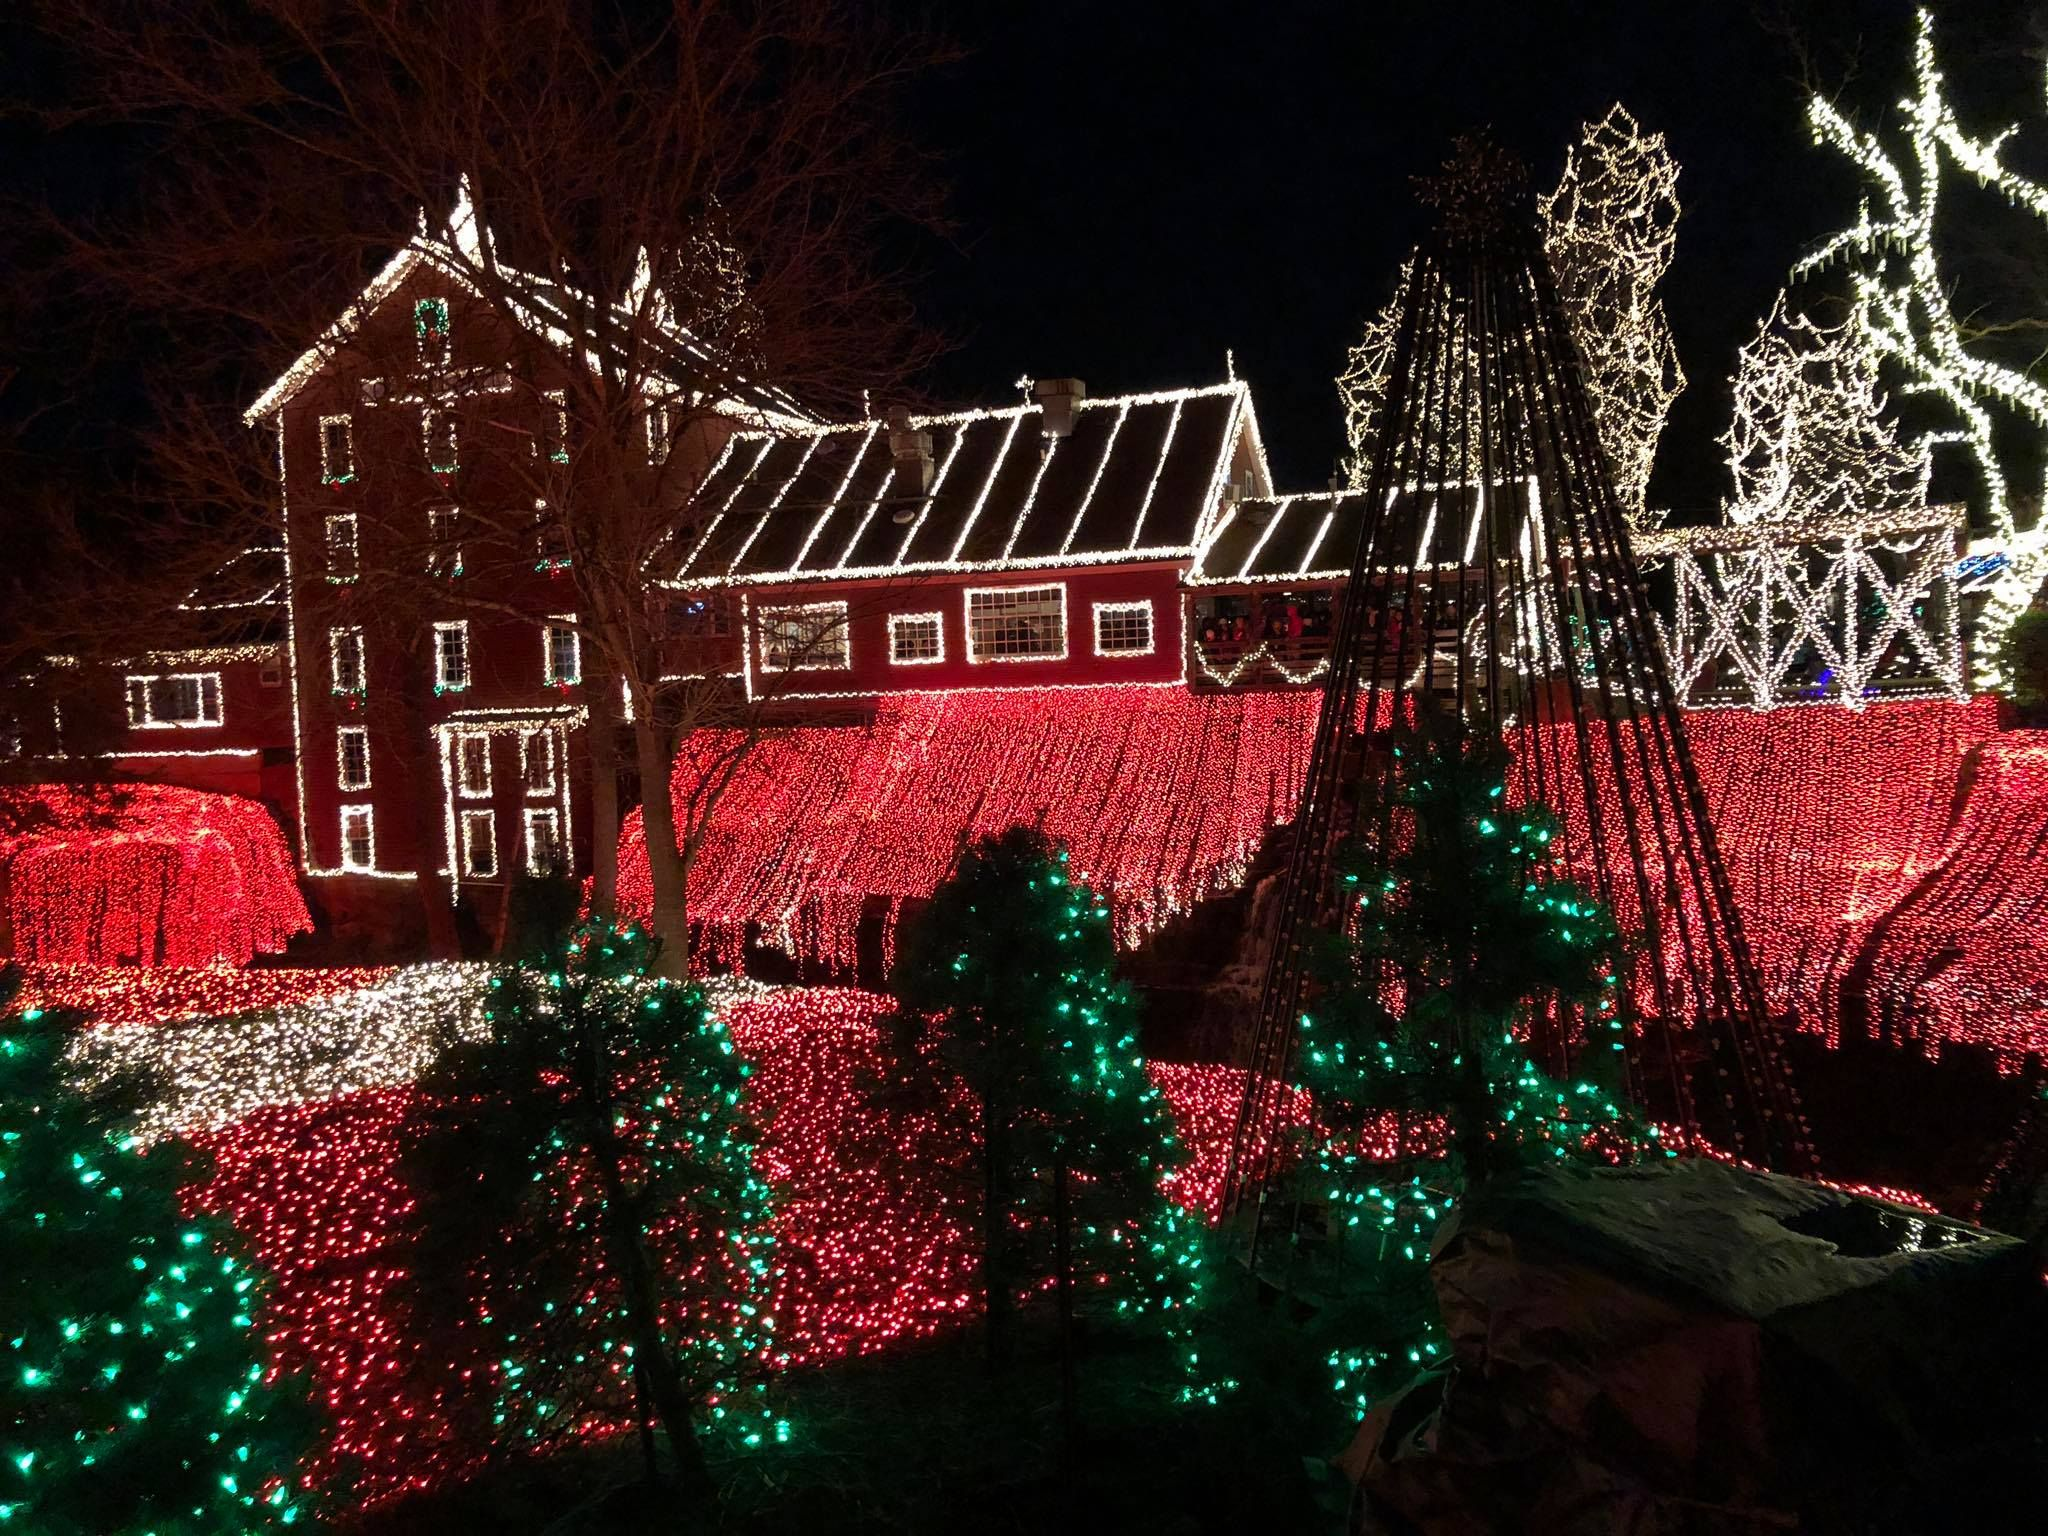 Clifton Mill Christmas Lights.25 Bbest Christmas Light Displays In America Holiday Light